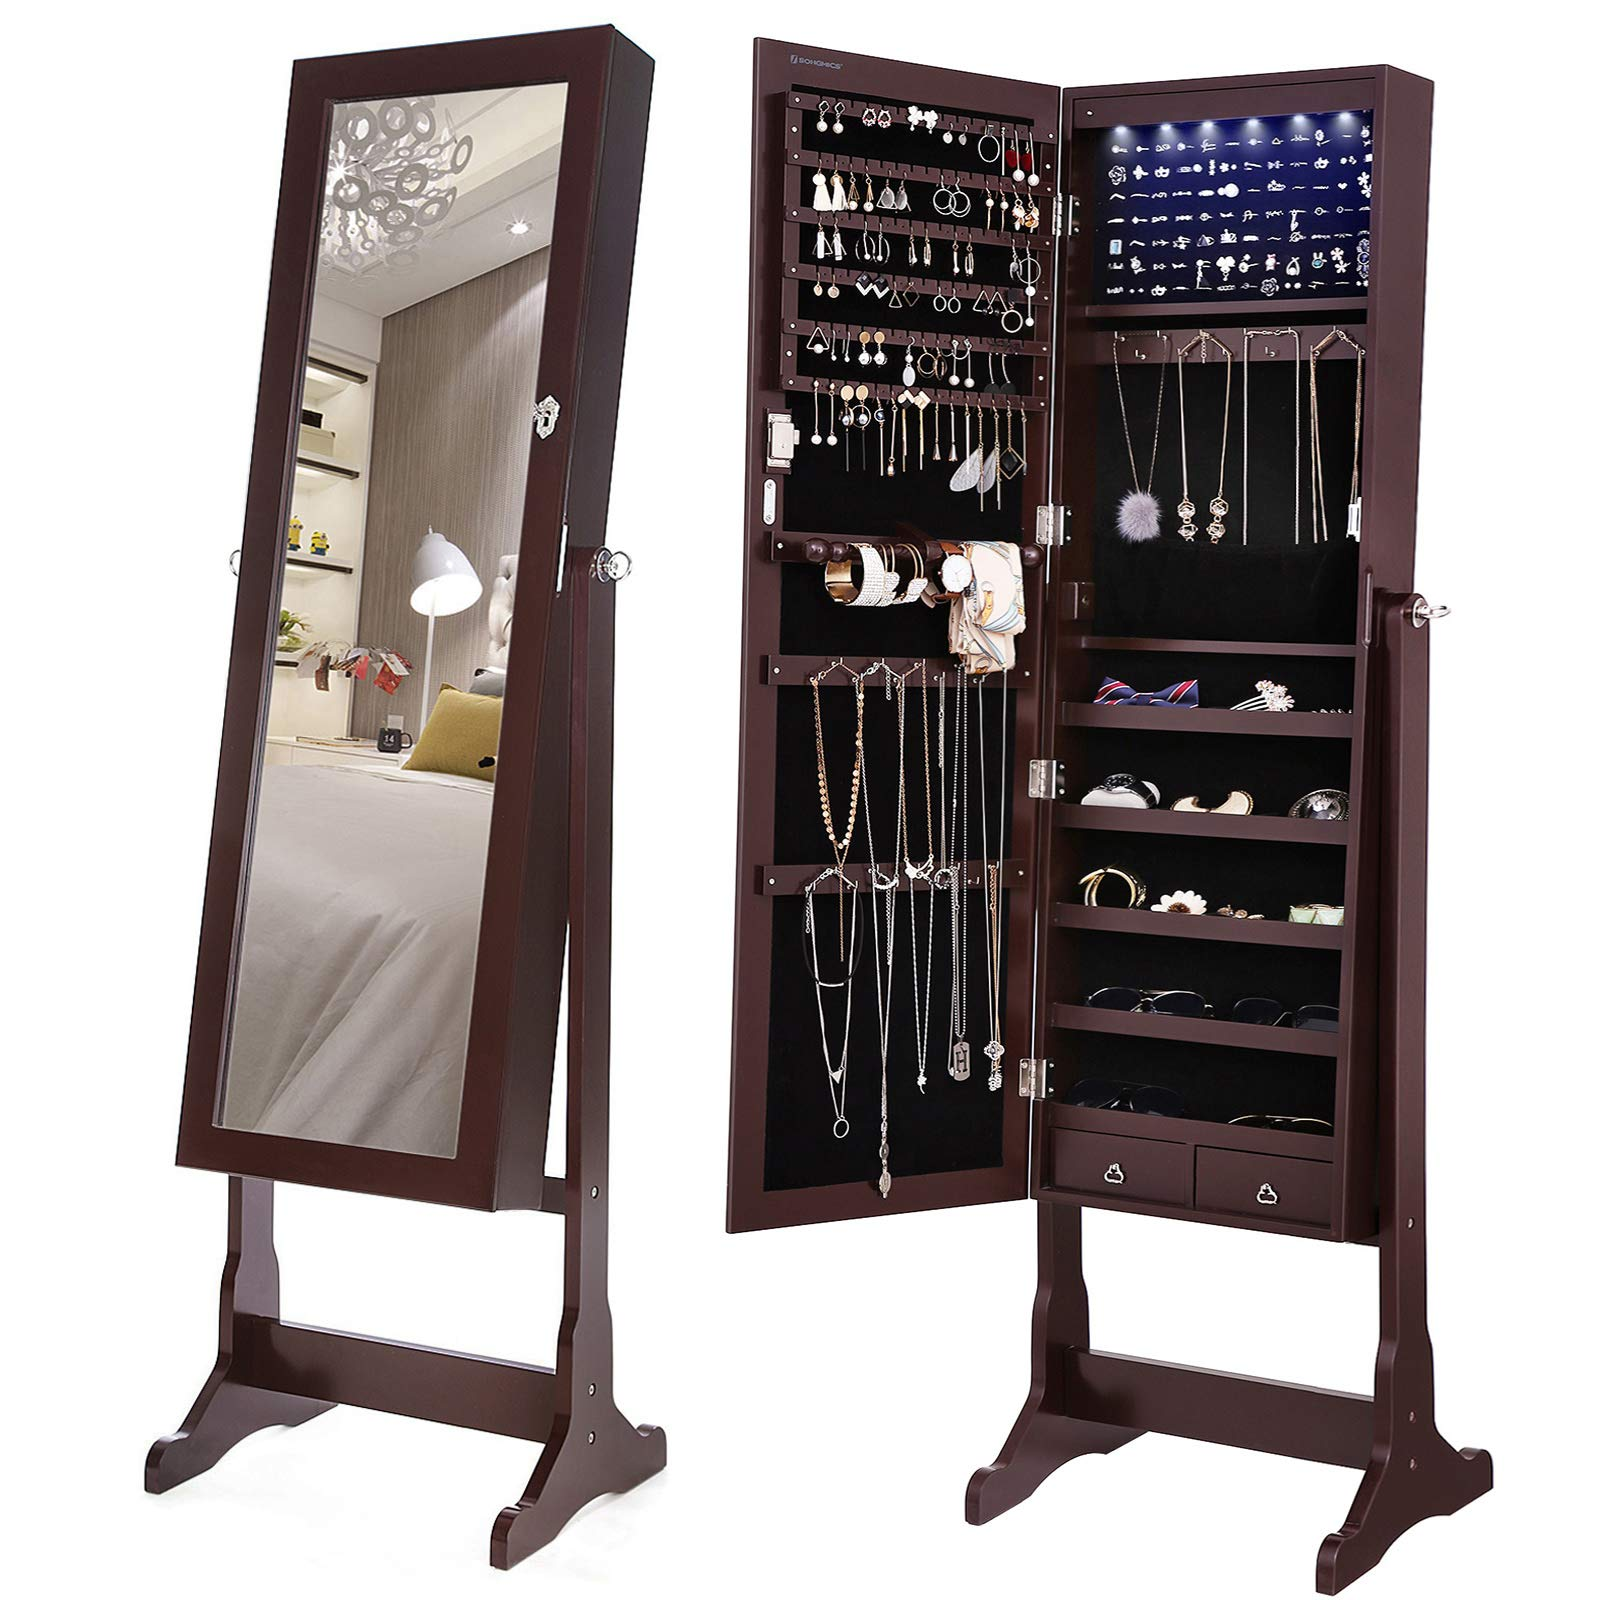 SONGMICS 6 LEDs Mirror Jewelry Cabinet Lockable Standing Mirrored Jewelry Armoire Organizer 2 Drawers Brown Mother's Day Gift UJJC94K by SONGMICS (Image #1)